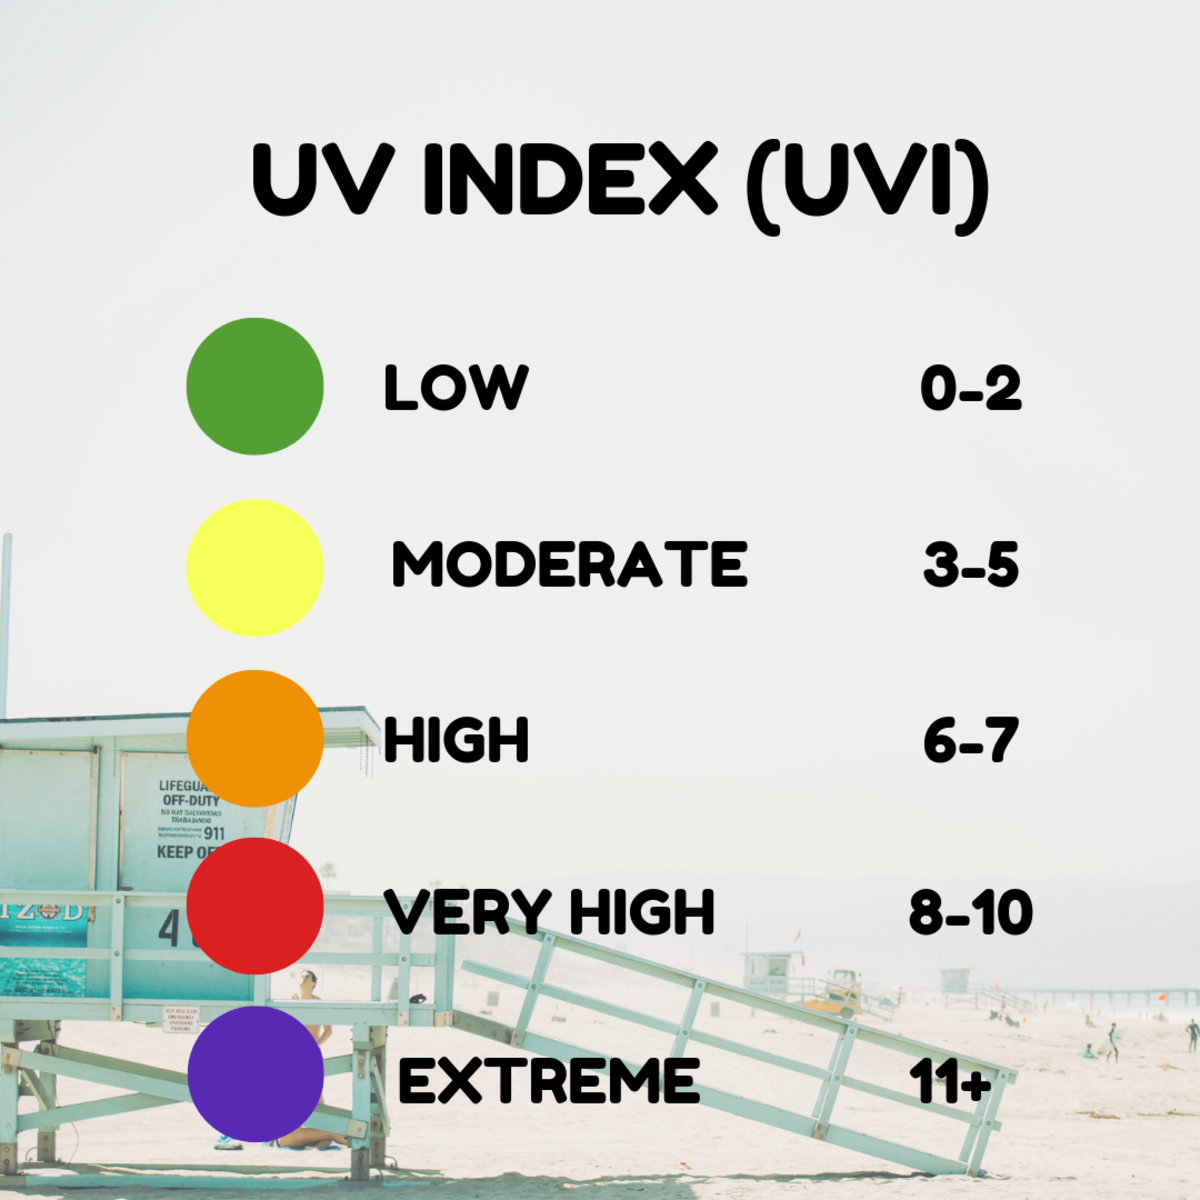 The higher the UVI rating, the more dangerous it is to go outside and expose yourself to the sun's rays.